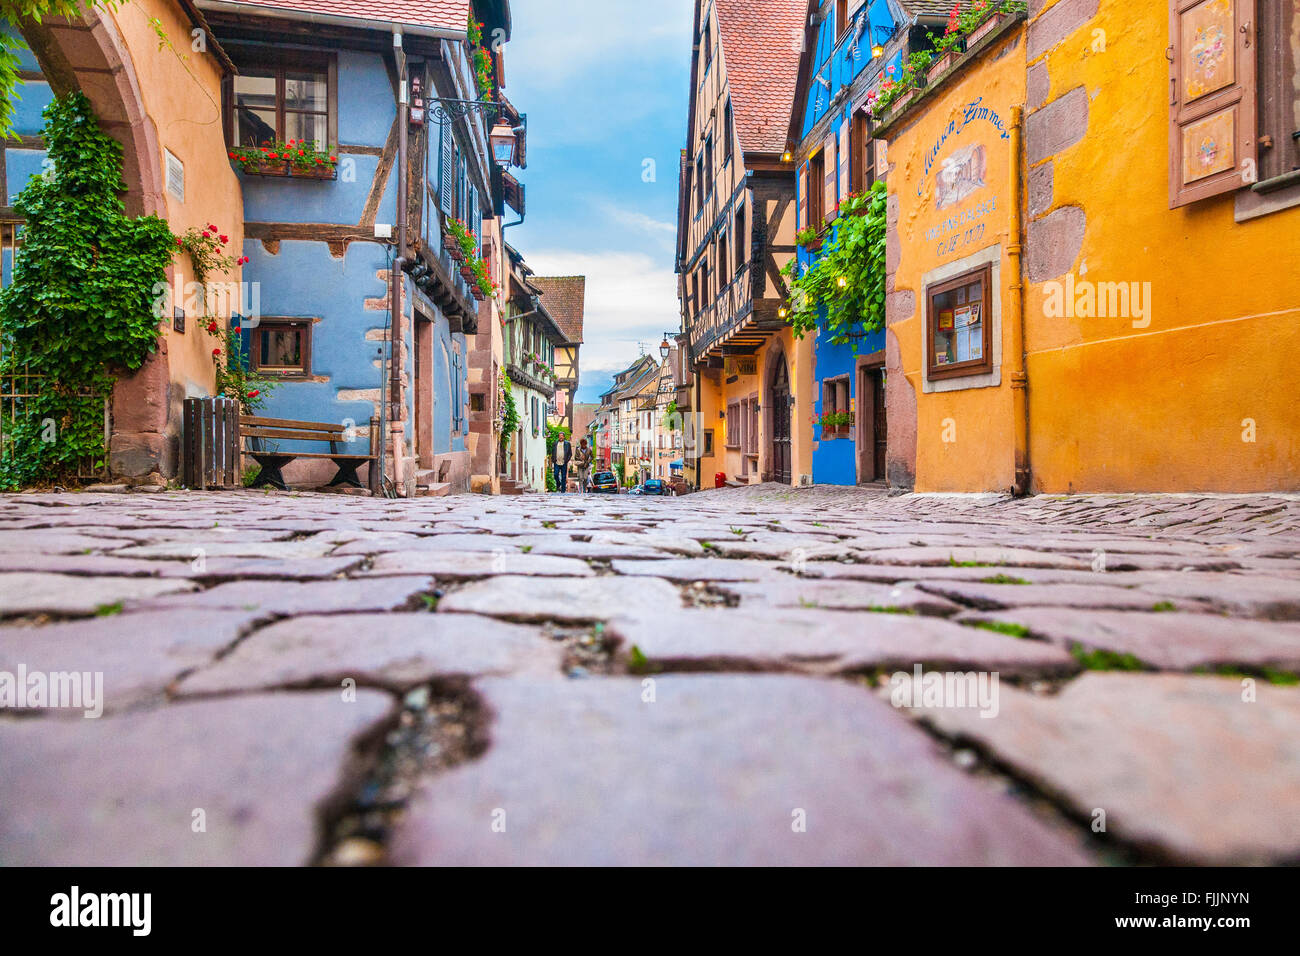 Typical street view in Riquewihr, Alsace, Haut-Rhin, France, Europe - Stock Image